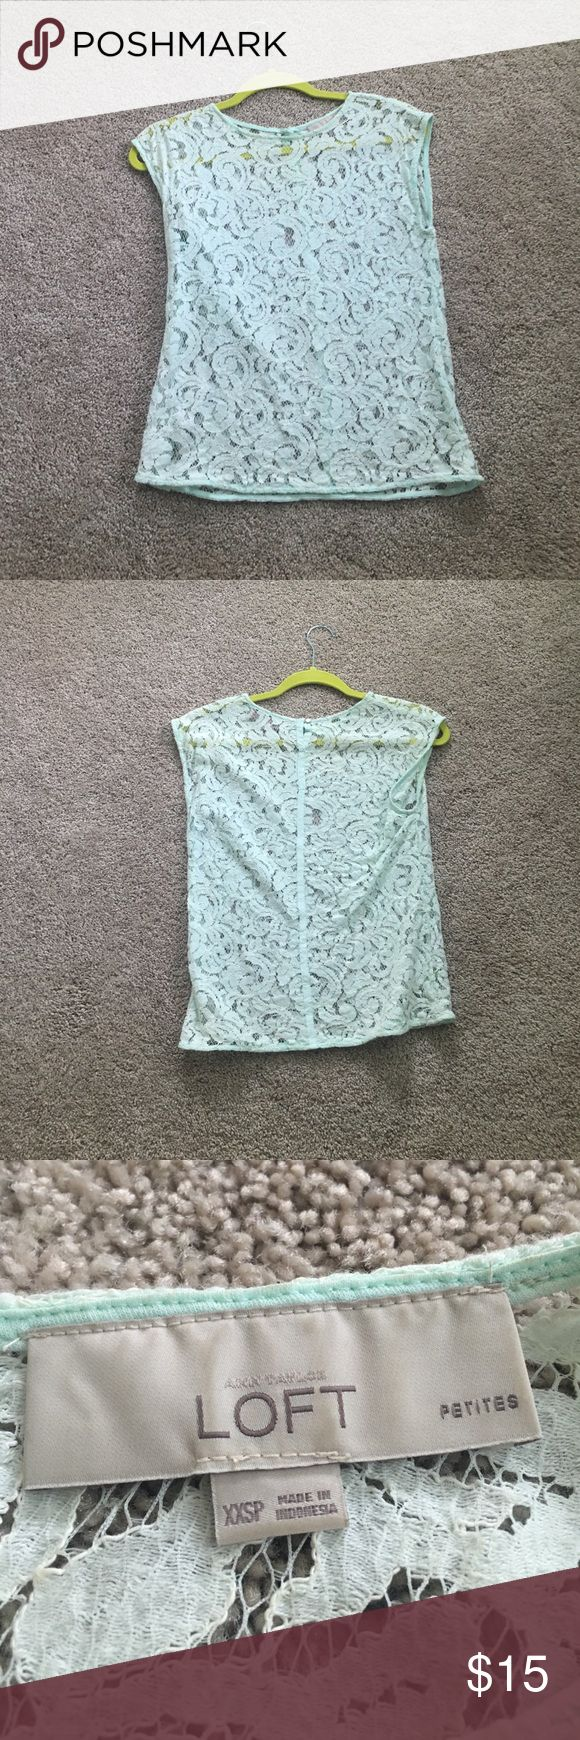 Aqua Lace Top This lace top looks great over any neutral tank. My personal favorites are navy and black. It does have some slight staining around the neck shown in the last picture from foundation but I think with some time and elbow grease it should come out. LOFT Tops Tees - Short Sleeve